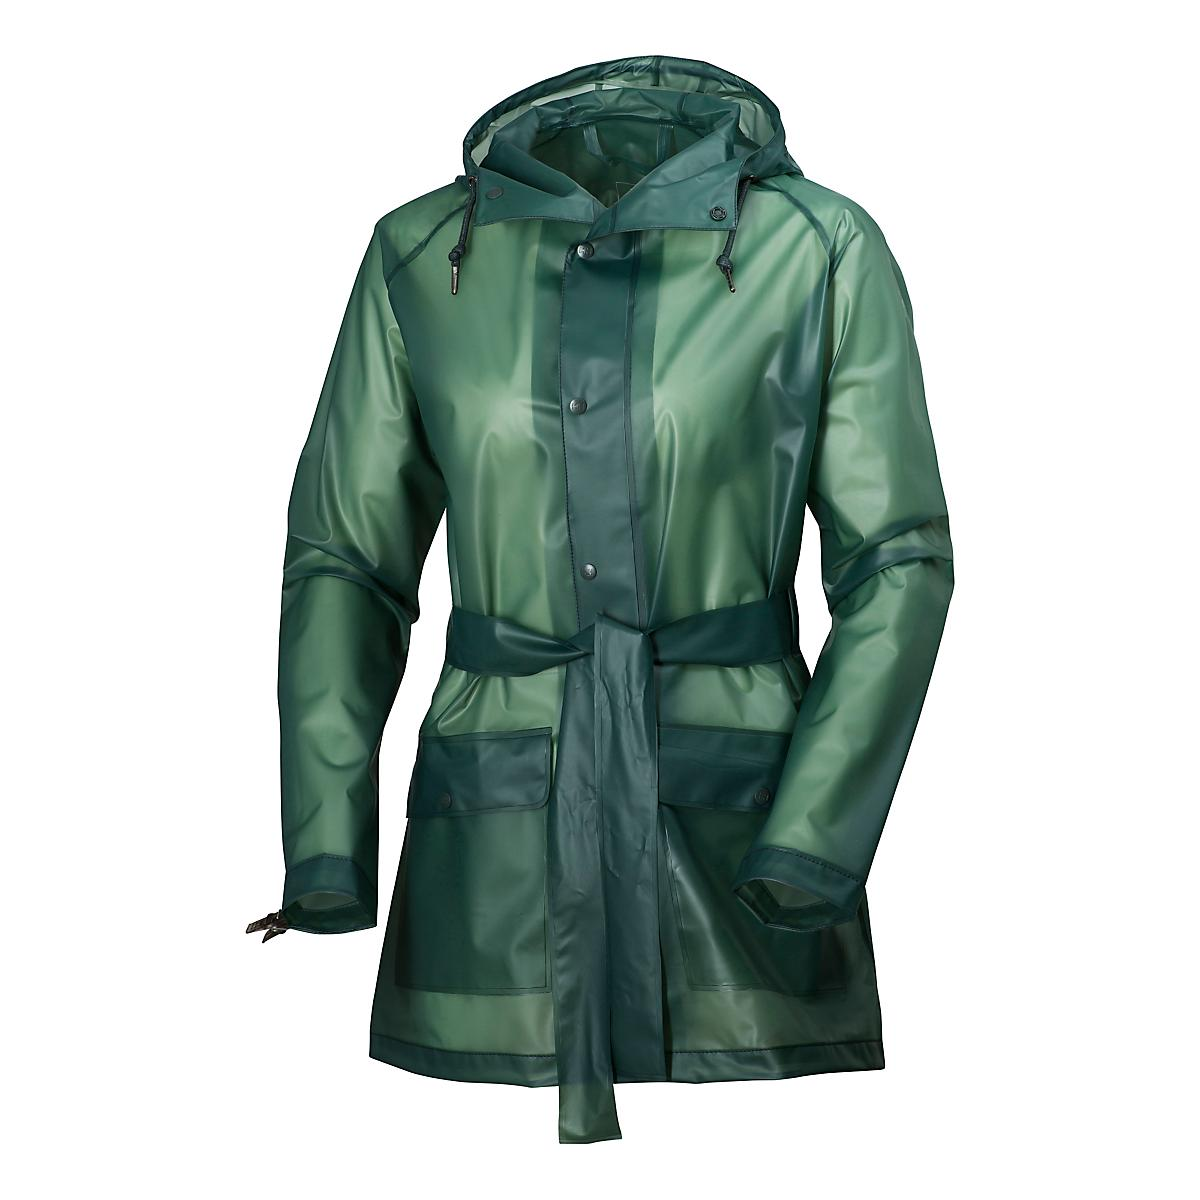 Women's Helly Hansen�Plarex Coat